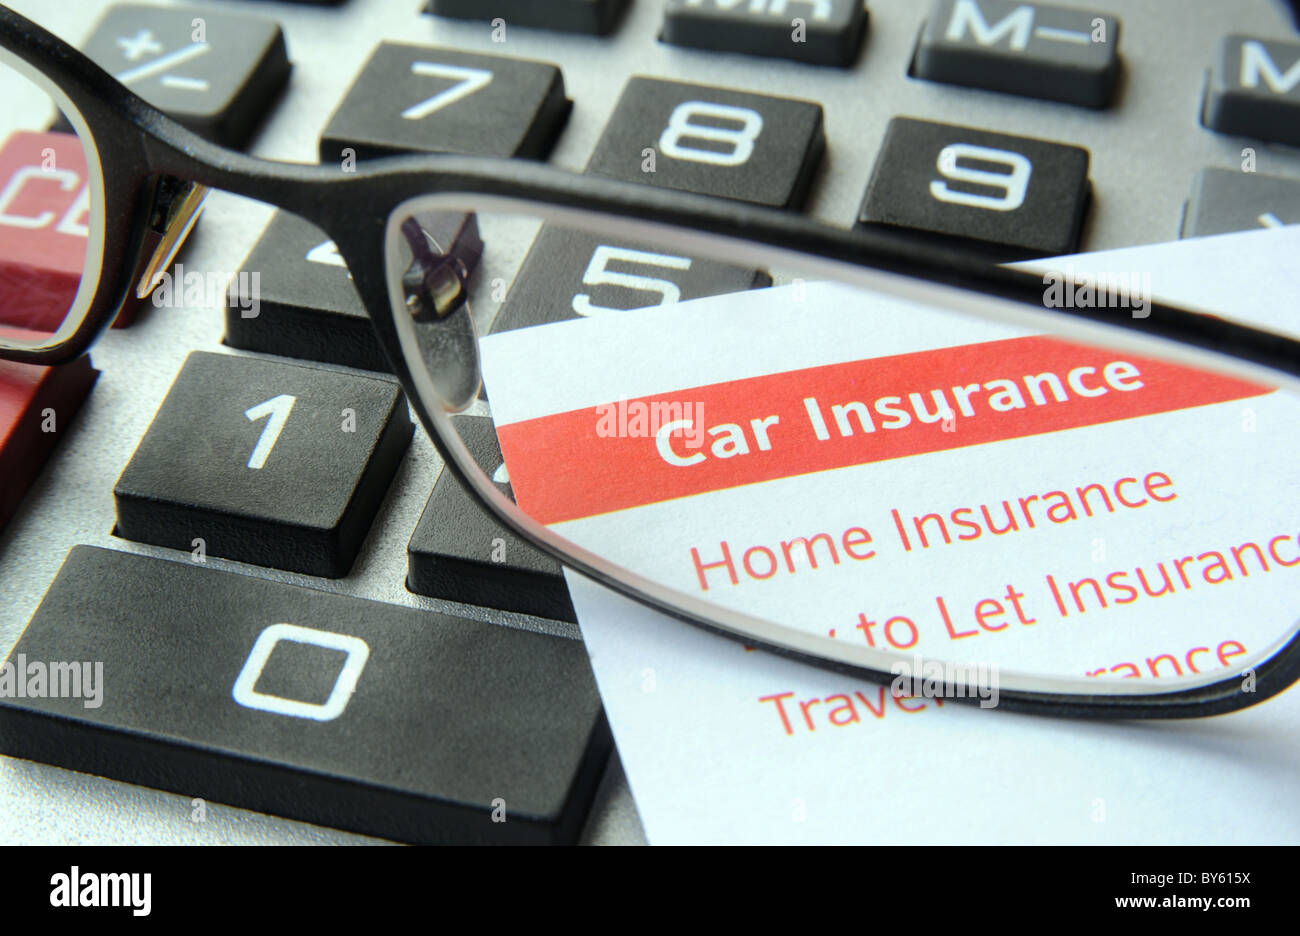 CAR AND HOME INSURANCE LETTER WITH CALCULATOR RE HOME AND CAR INSURANCE COSTS PREMIUMS RENEWAL HOUSEHOLD BUDGET - Stock Image